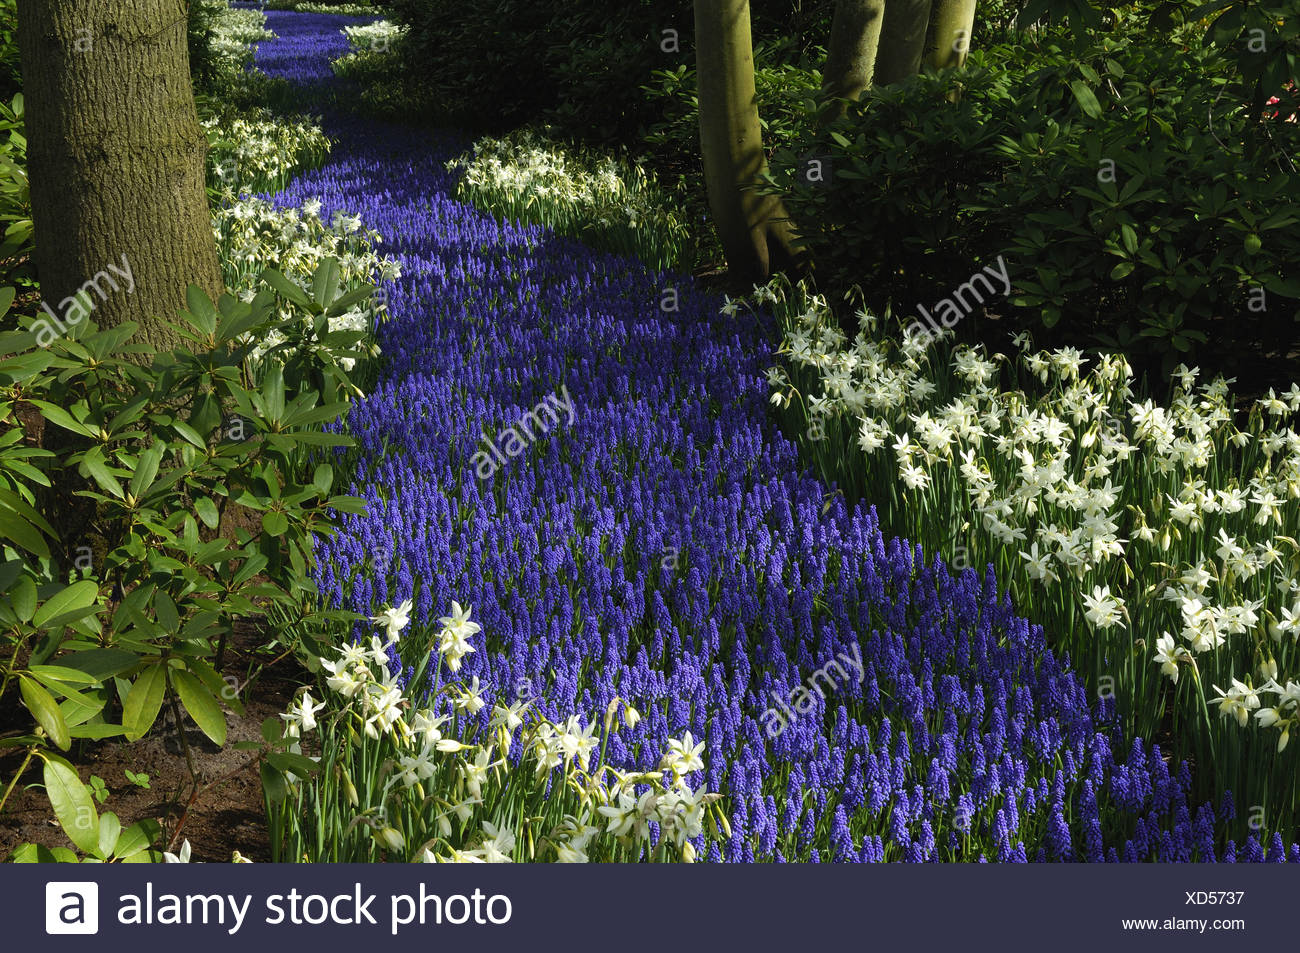 small grape hyacinth, common grape hyacinth (Muscari botryoides), park with flowerbeds with grape hyacinths an daffodils, Nethe Stock Photo